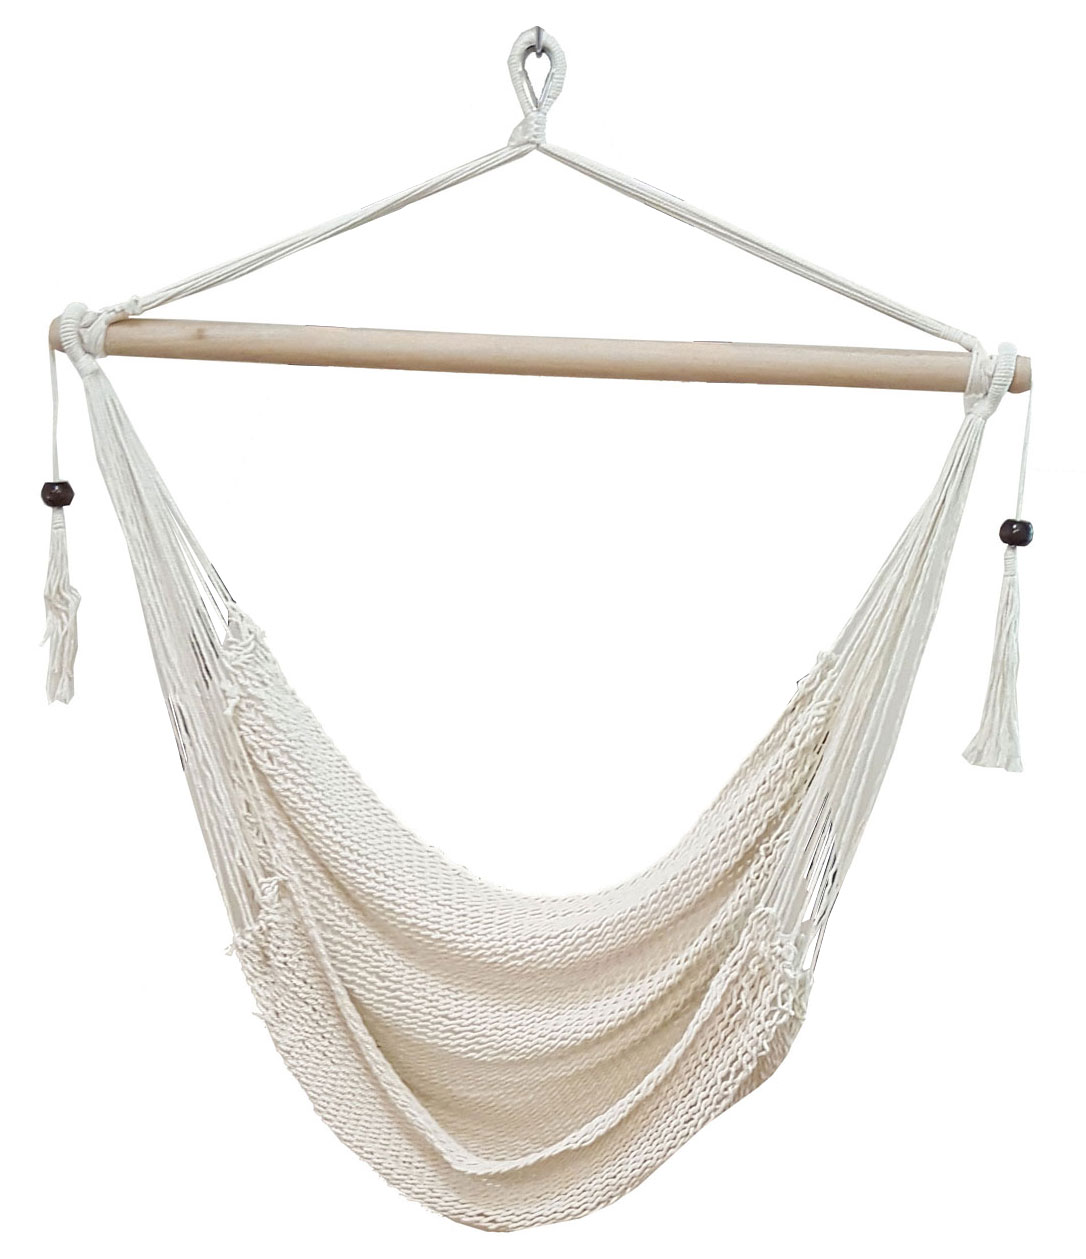 Hammock Hanging Chair White Cotton Rope Hammock Chair With Tassels Heavenly